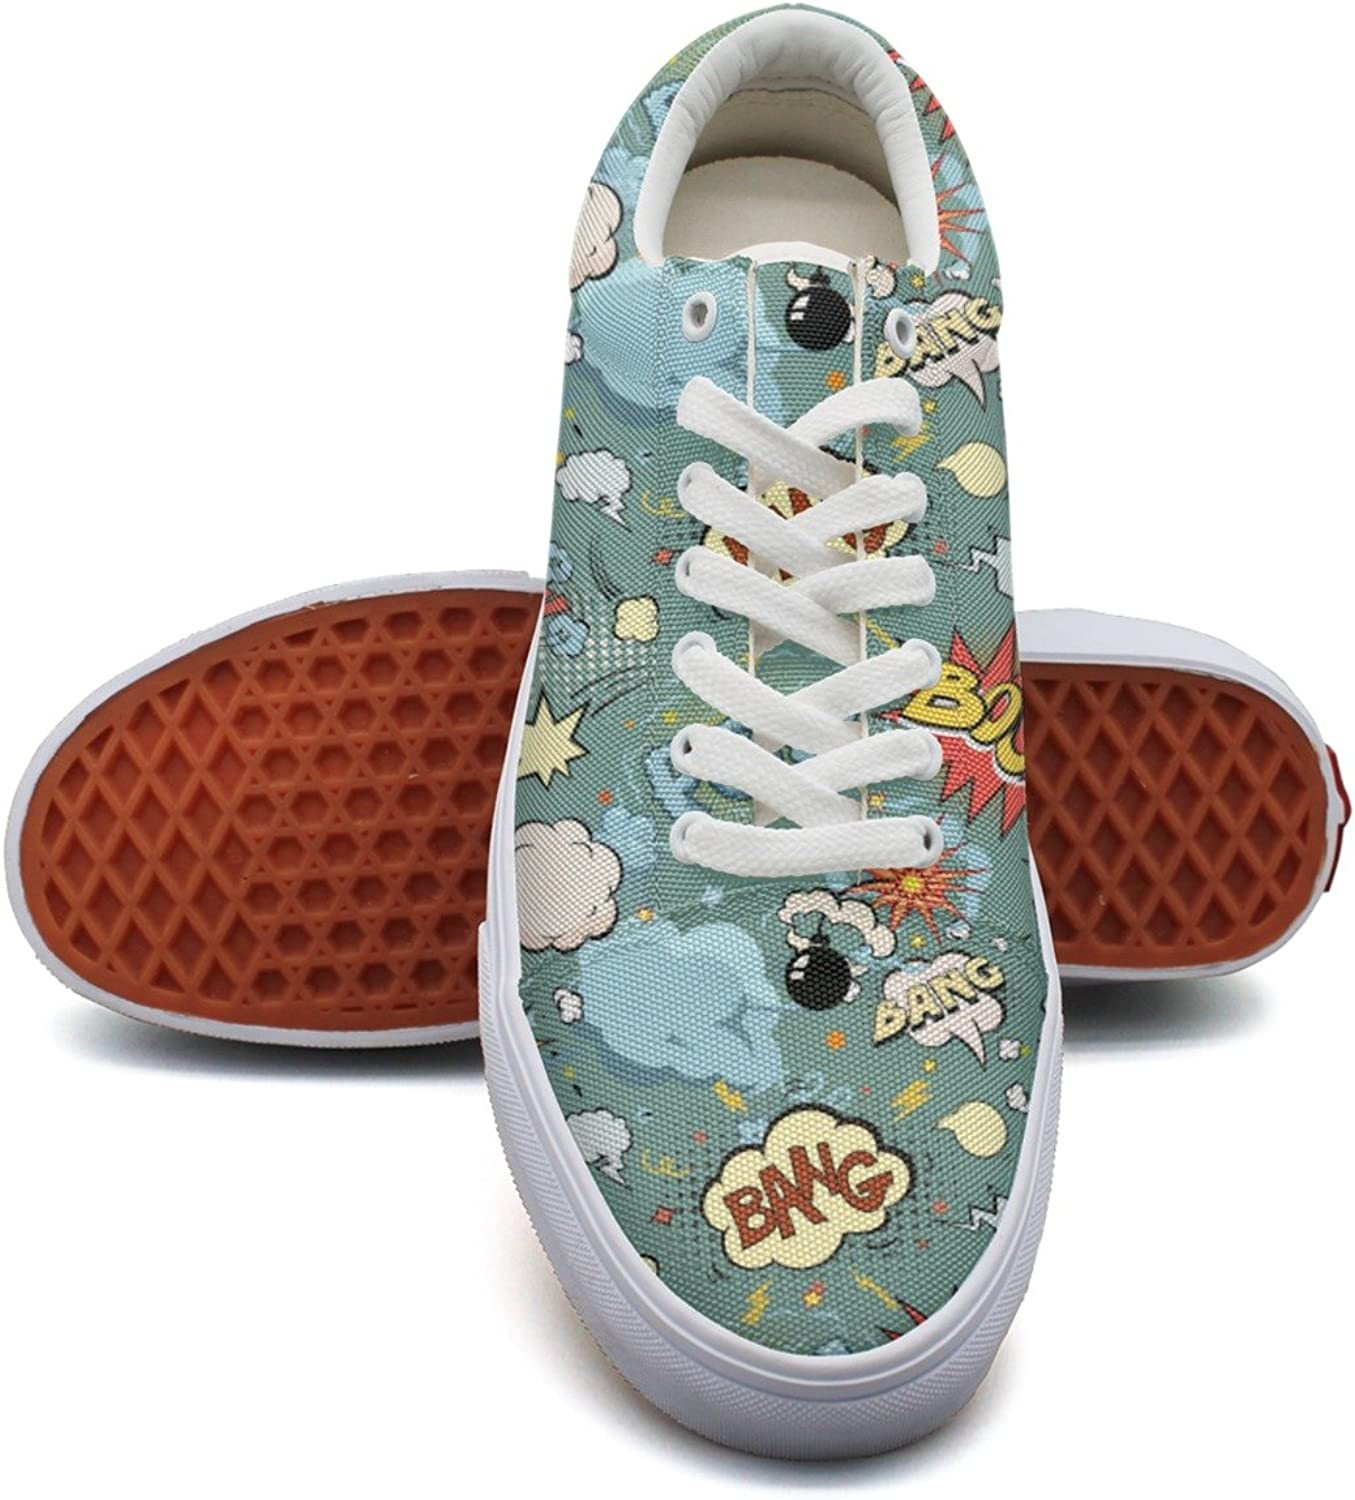 Feenfling Comic Cartoon Bubbles Womens Plain Canvas Boat shoes Low Top Neon Sneakers shoes for Women's